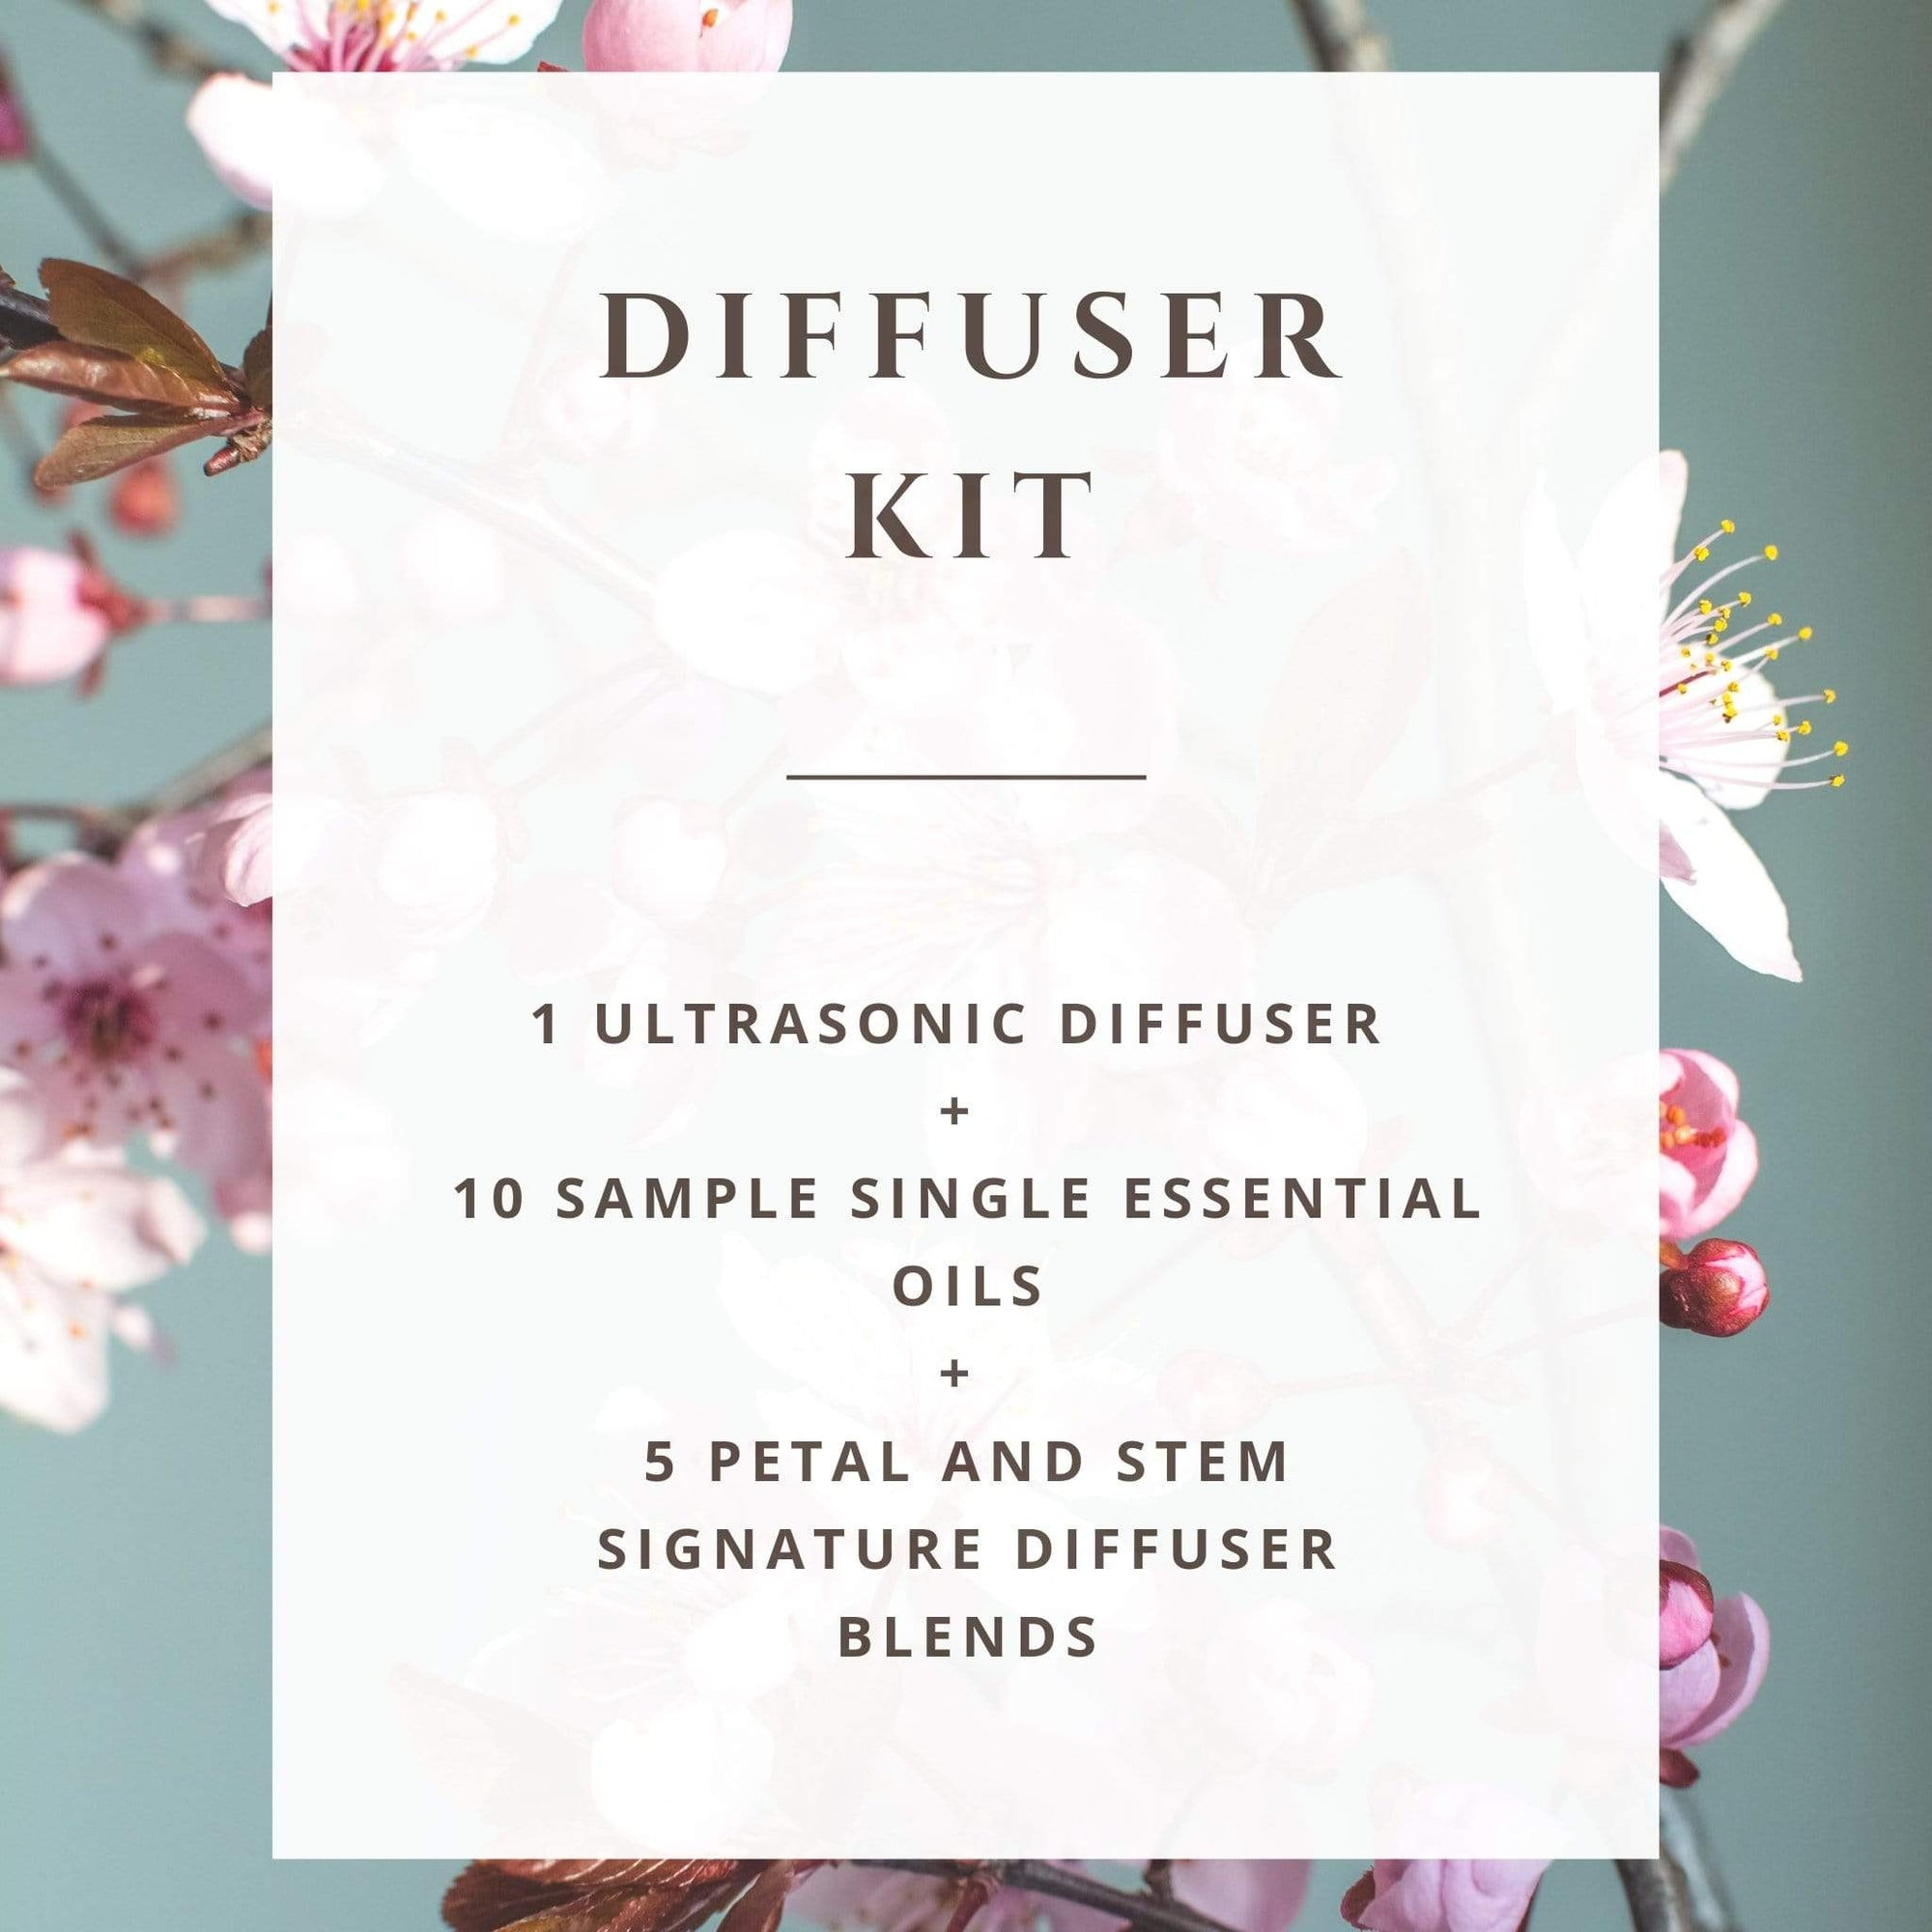 Diffuser Kit with Single Essential Oils and Diffuser Blends - Petal and Stem diffuser essential oil blends for anxiety